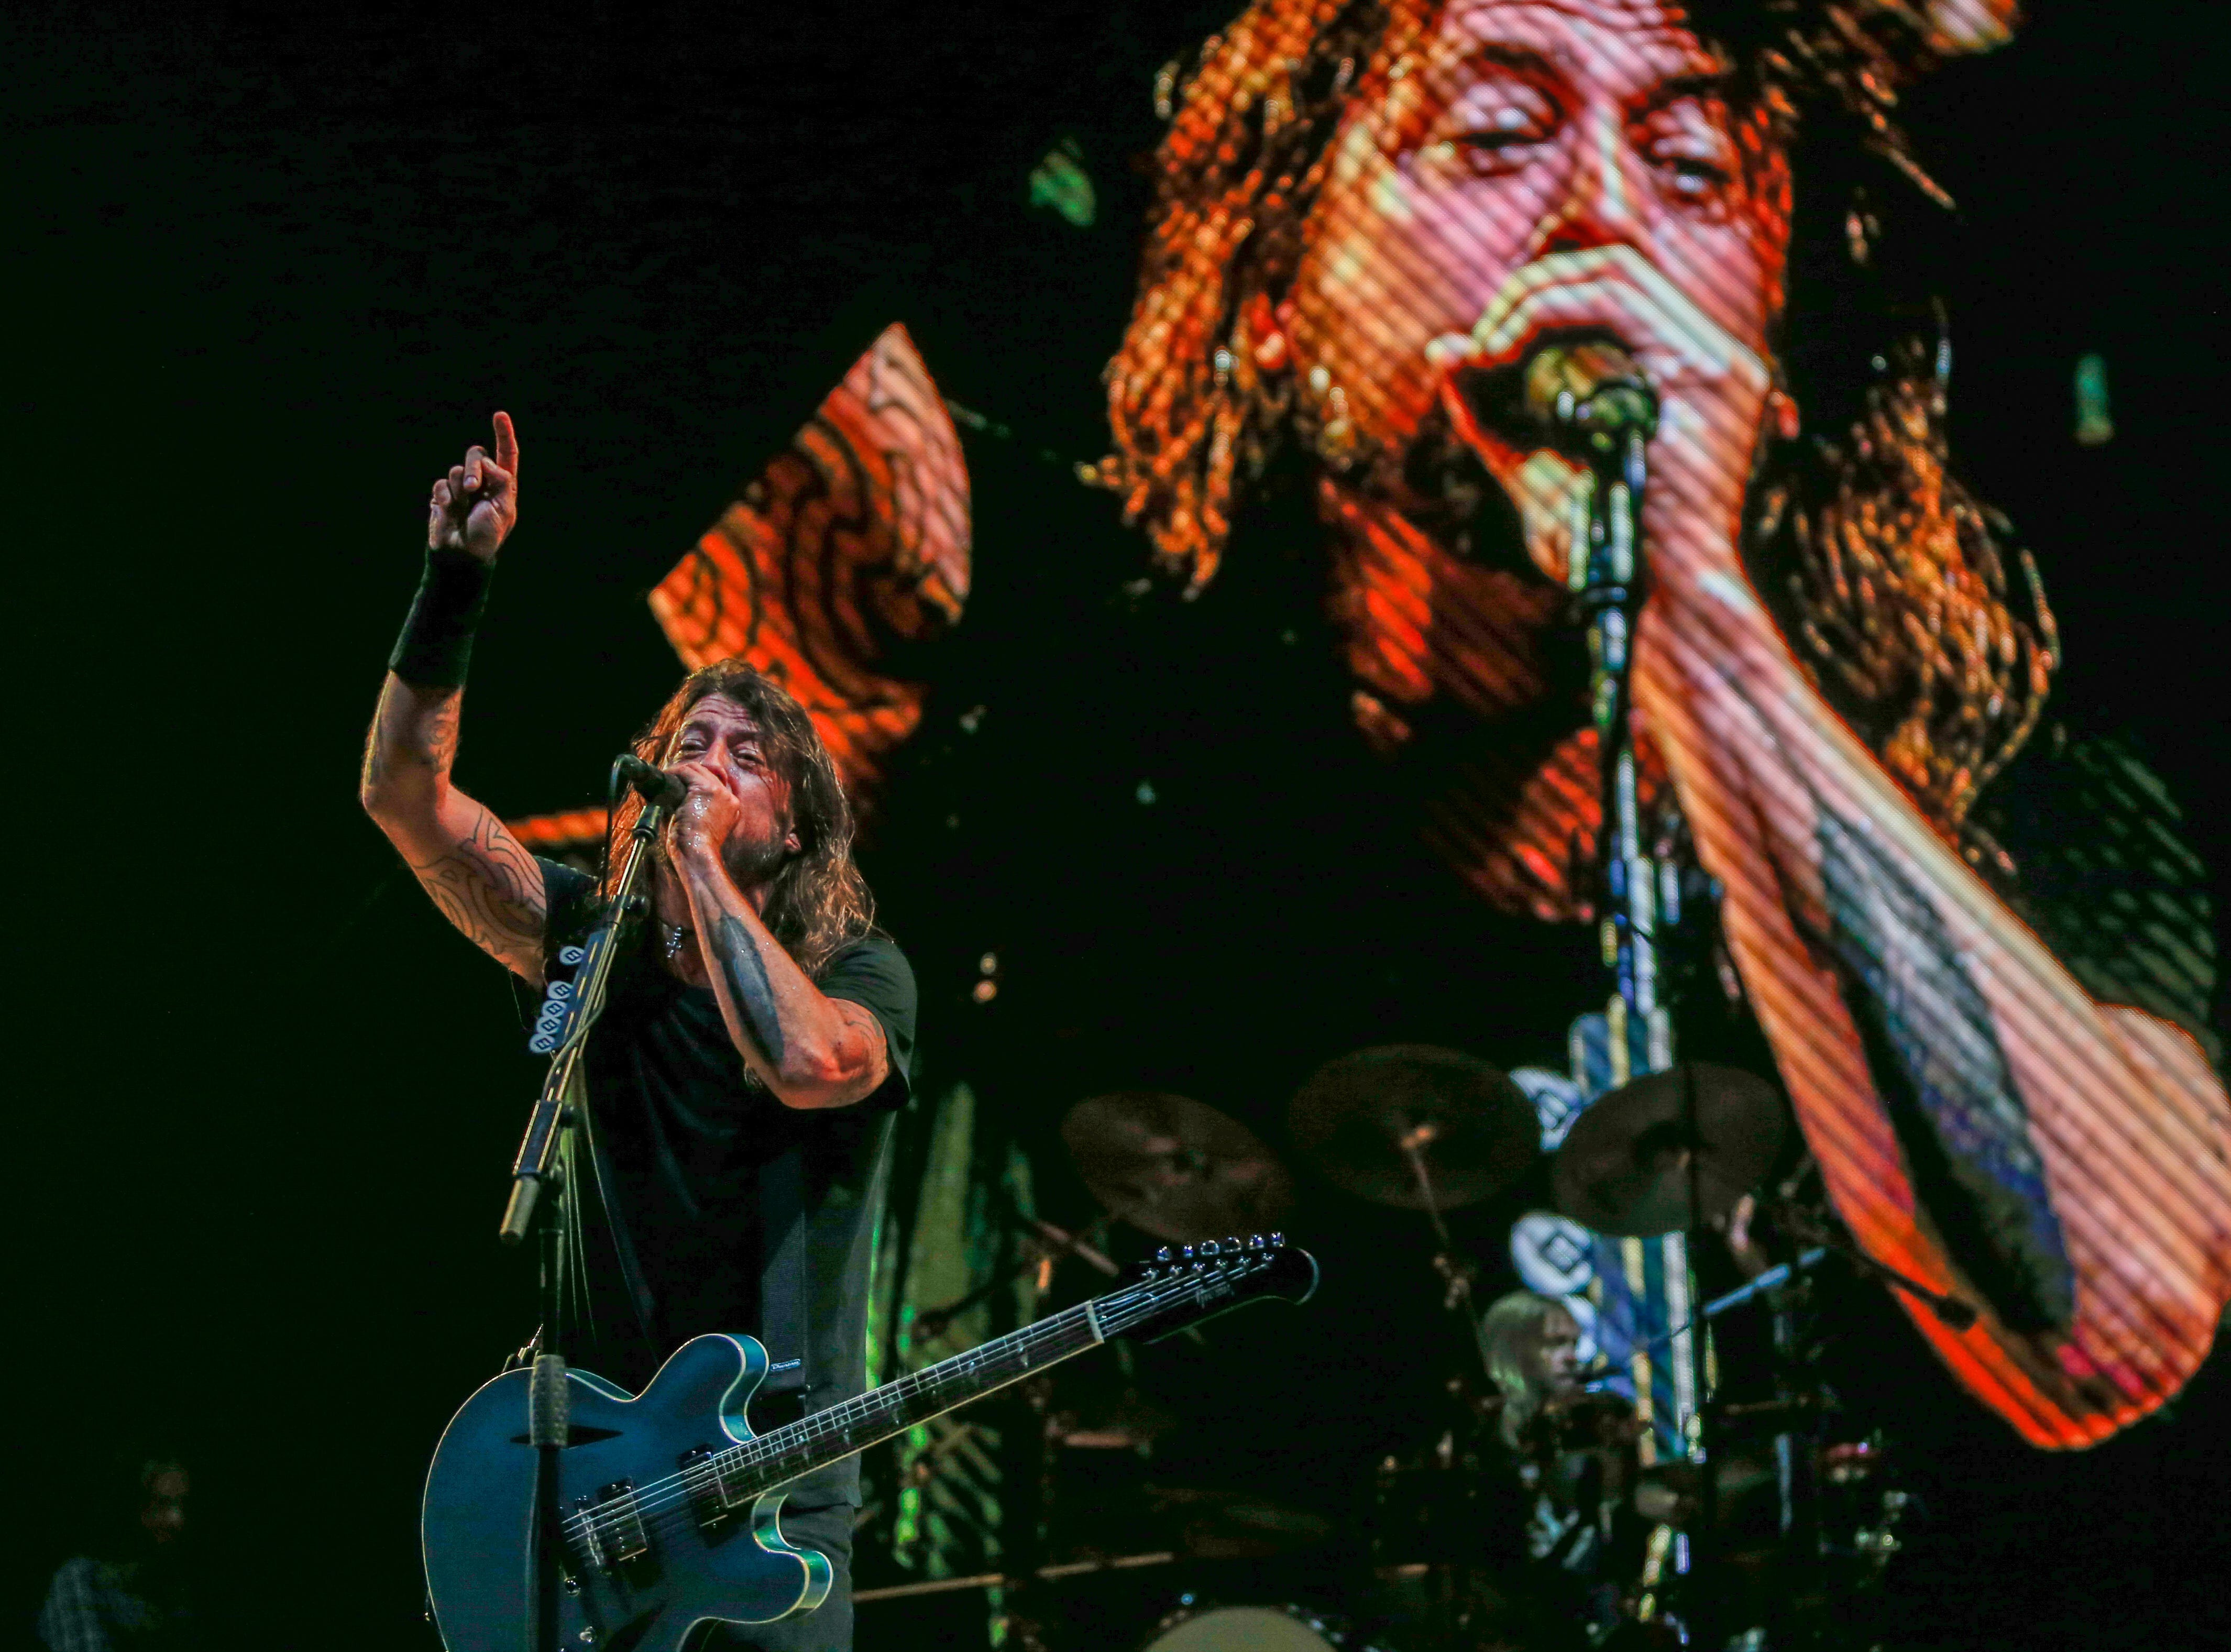 """Dave Grohl sings on stage as he's shown on the video board behind him during the Foo Fighters' """"Concrete and Gold"""" concert Monday at Little Caesars Arena."""